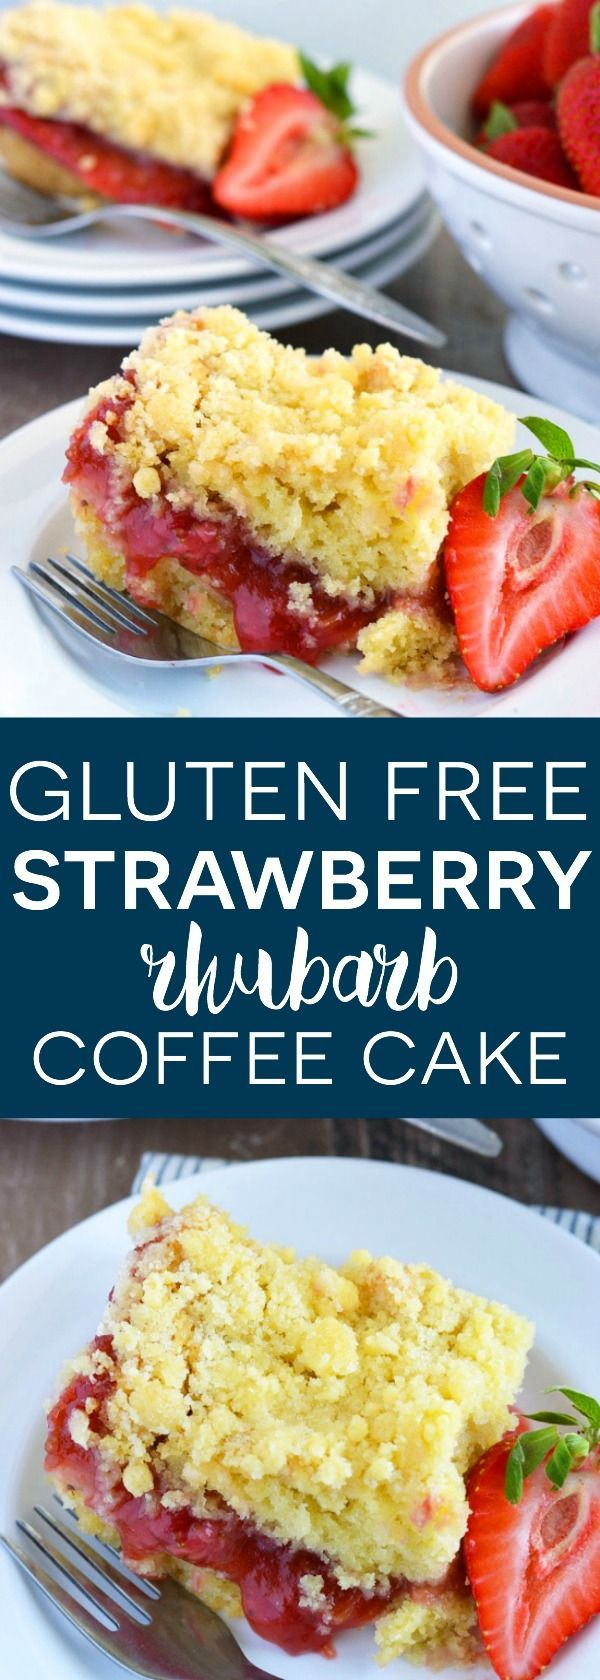 Gluten Free and Dairy Free Strawberry Rhubarb Coffee Cake from What The Fork Food Blog